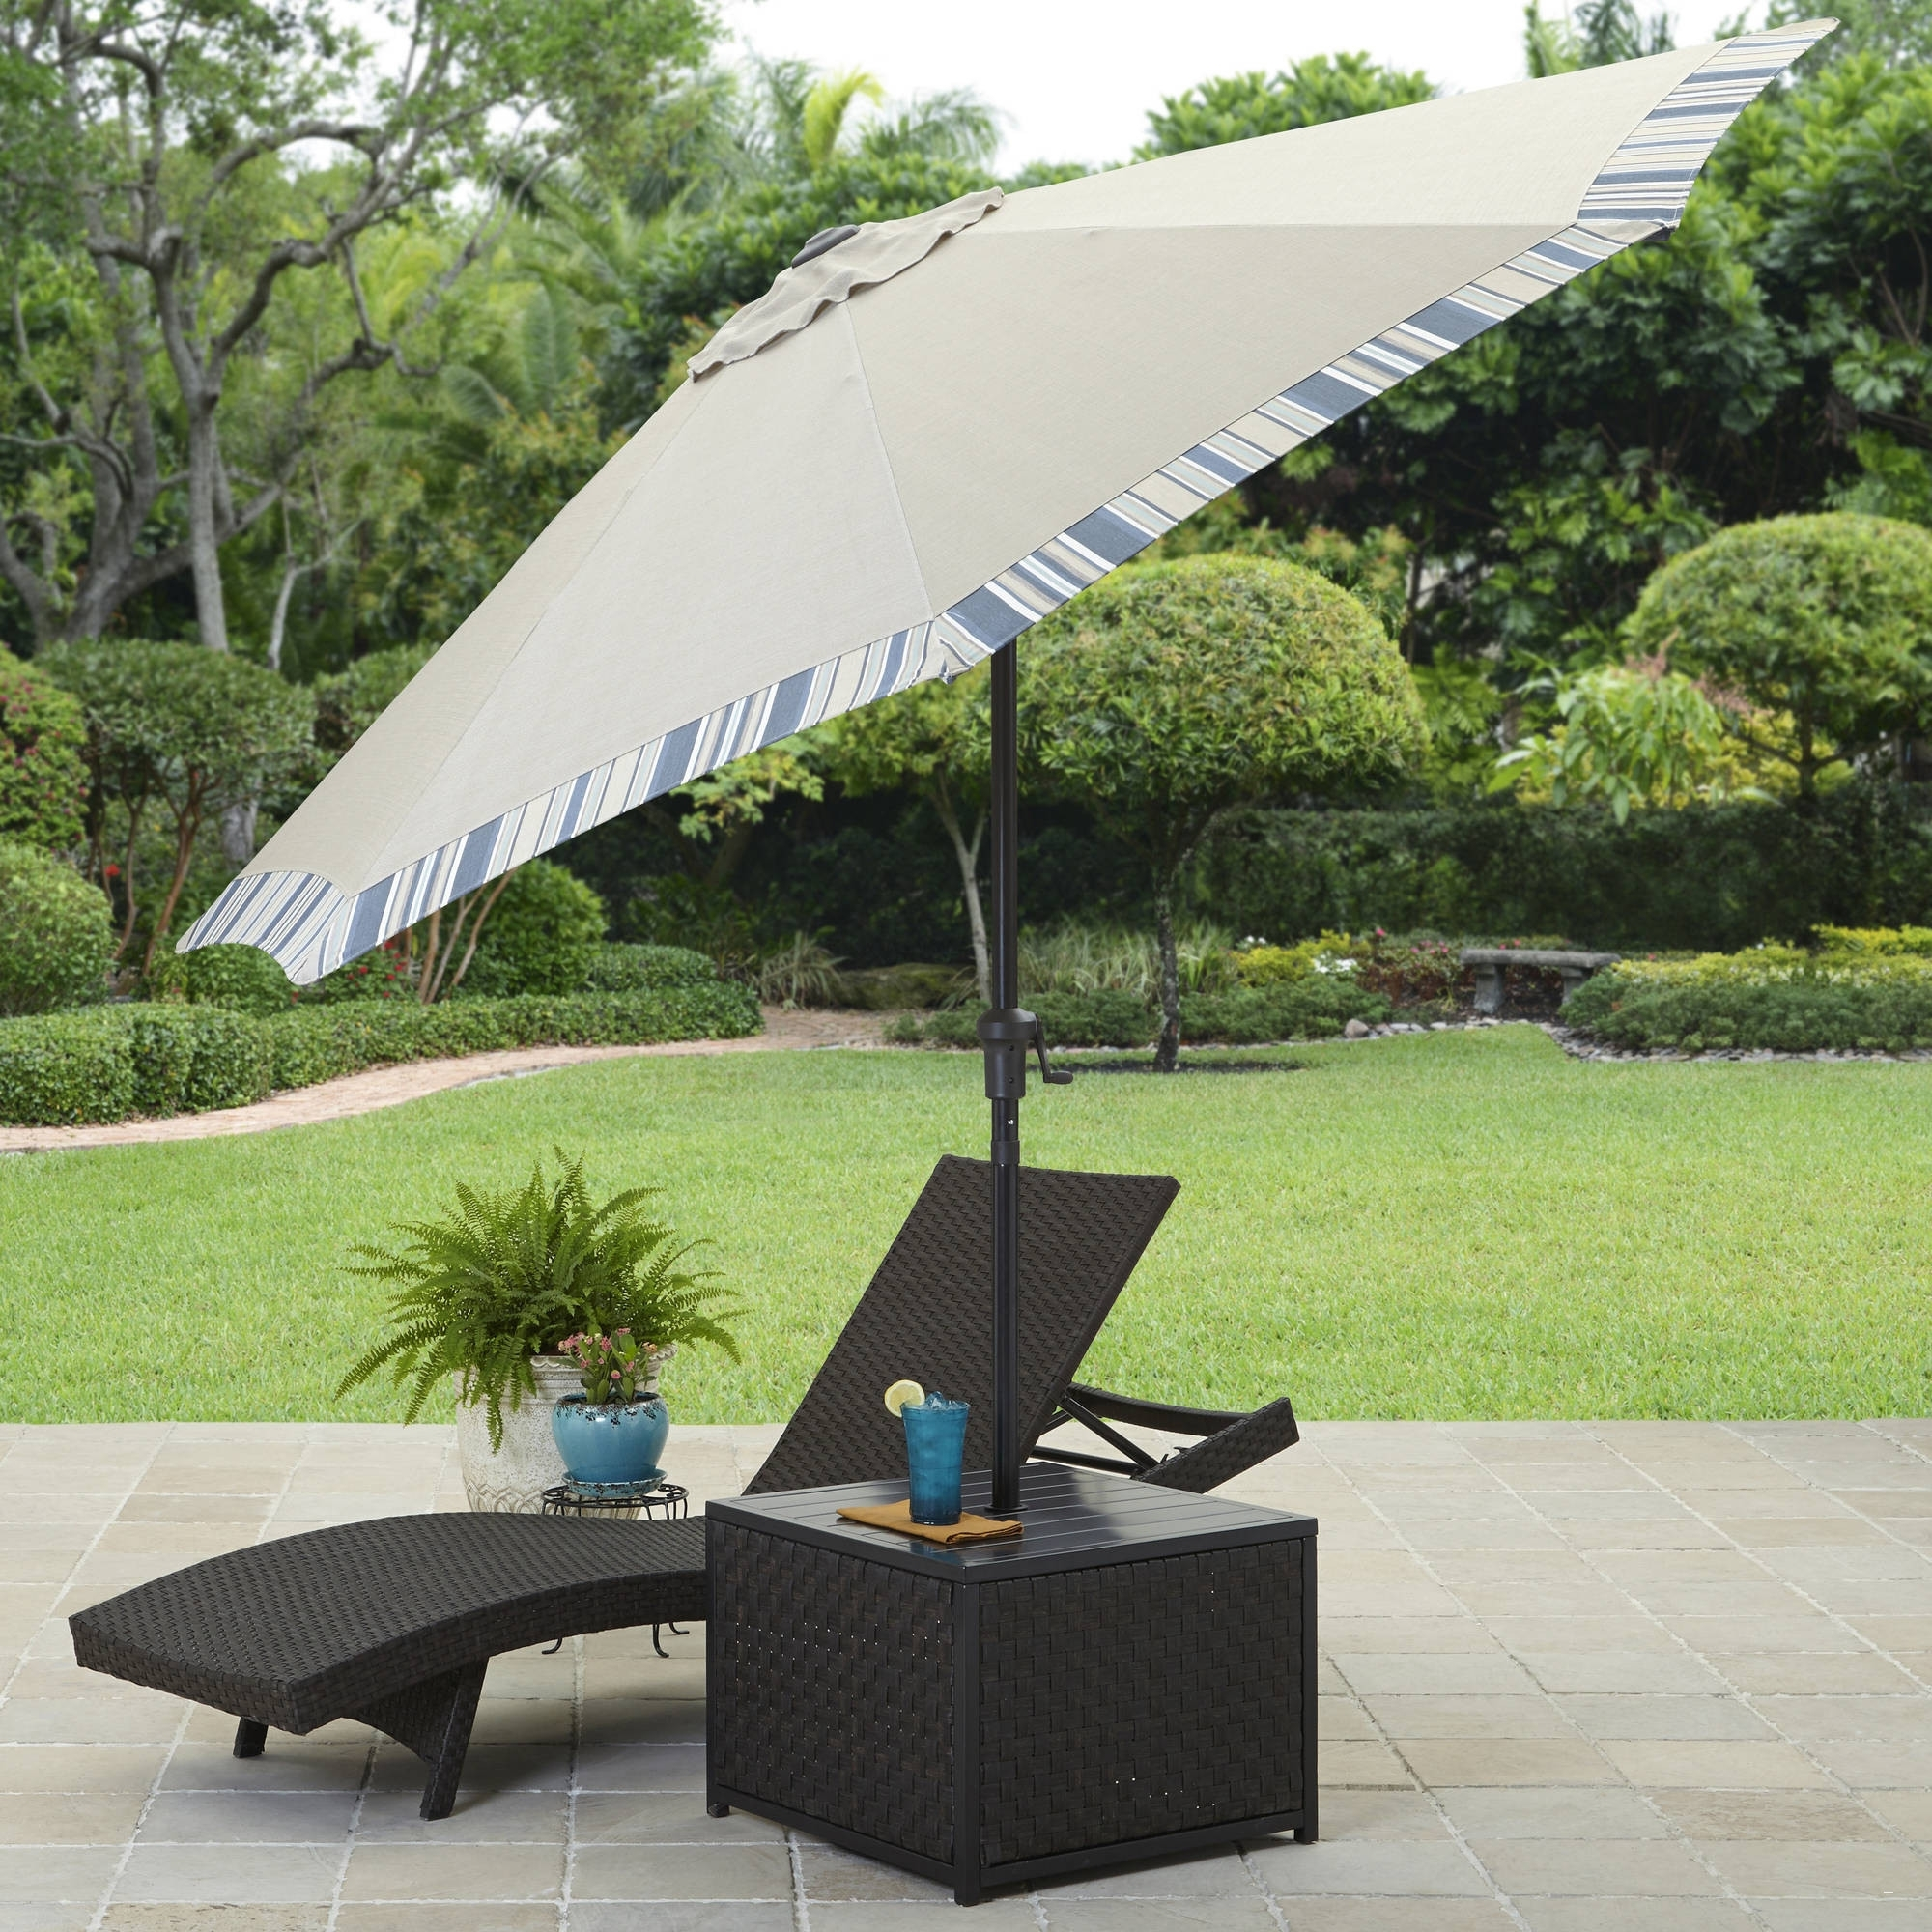 Fashionable Walmart Patio Umbrellas With Regard To Walmart Patio Umbrellas – Lovely Patio Umbrella Table Luxury Patio (View 5 of 20)